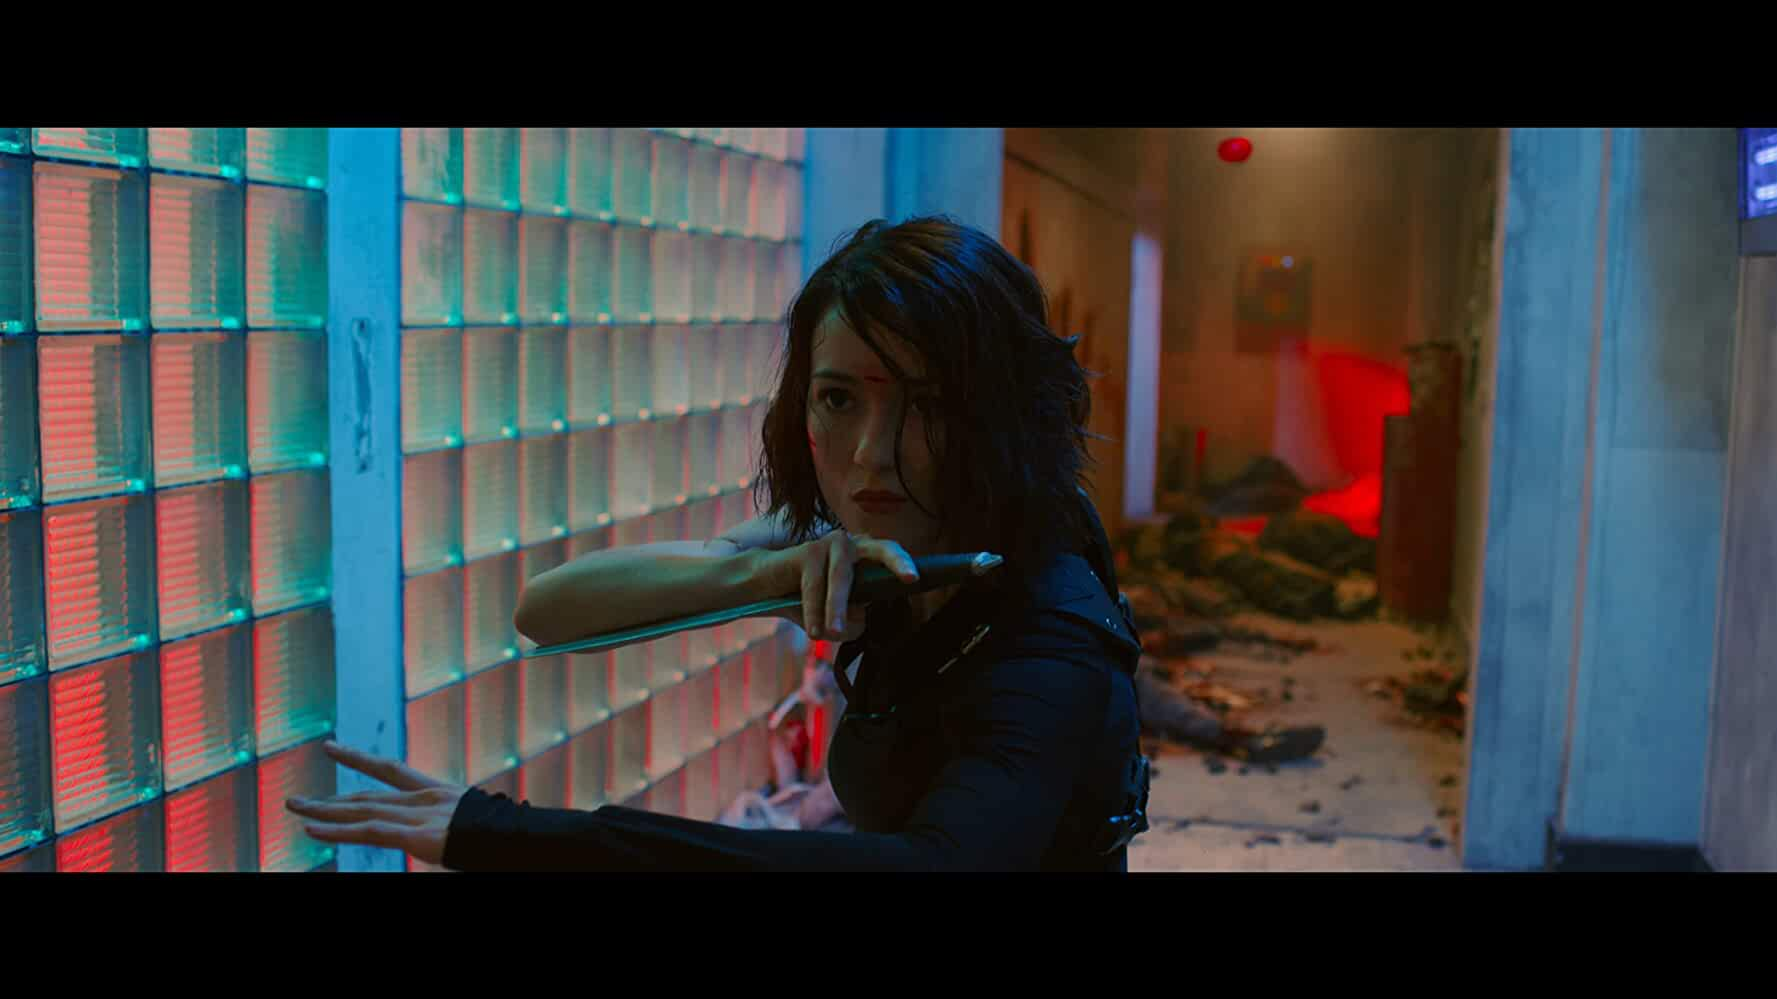 Julie Estelle in The Night Comes for Us (2018)